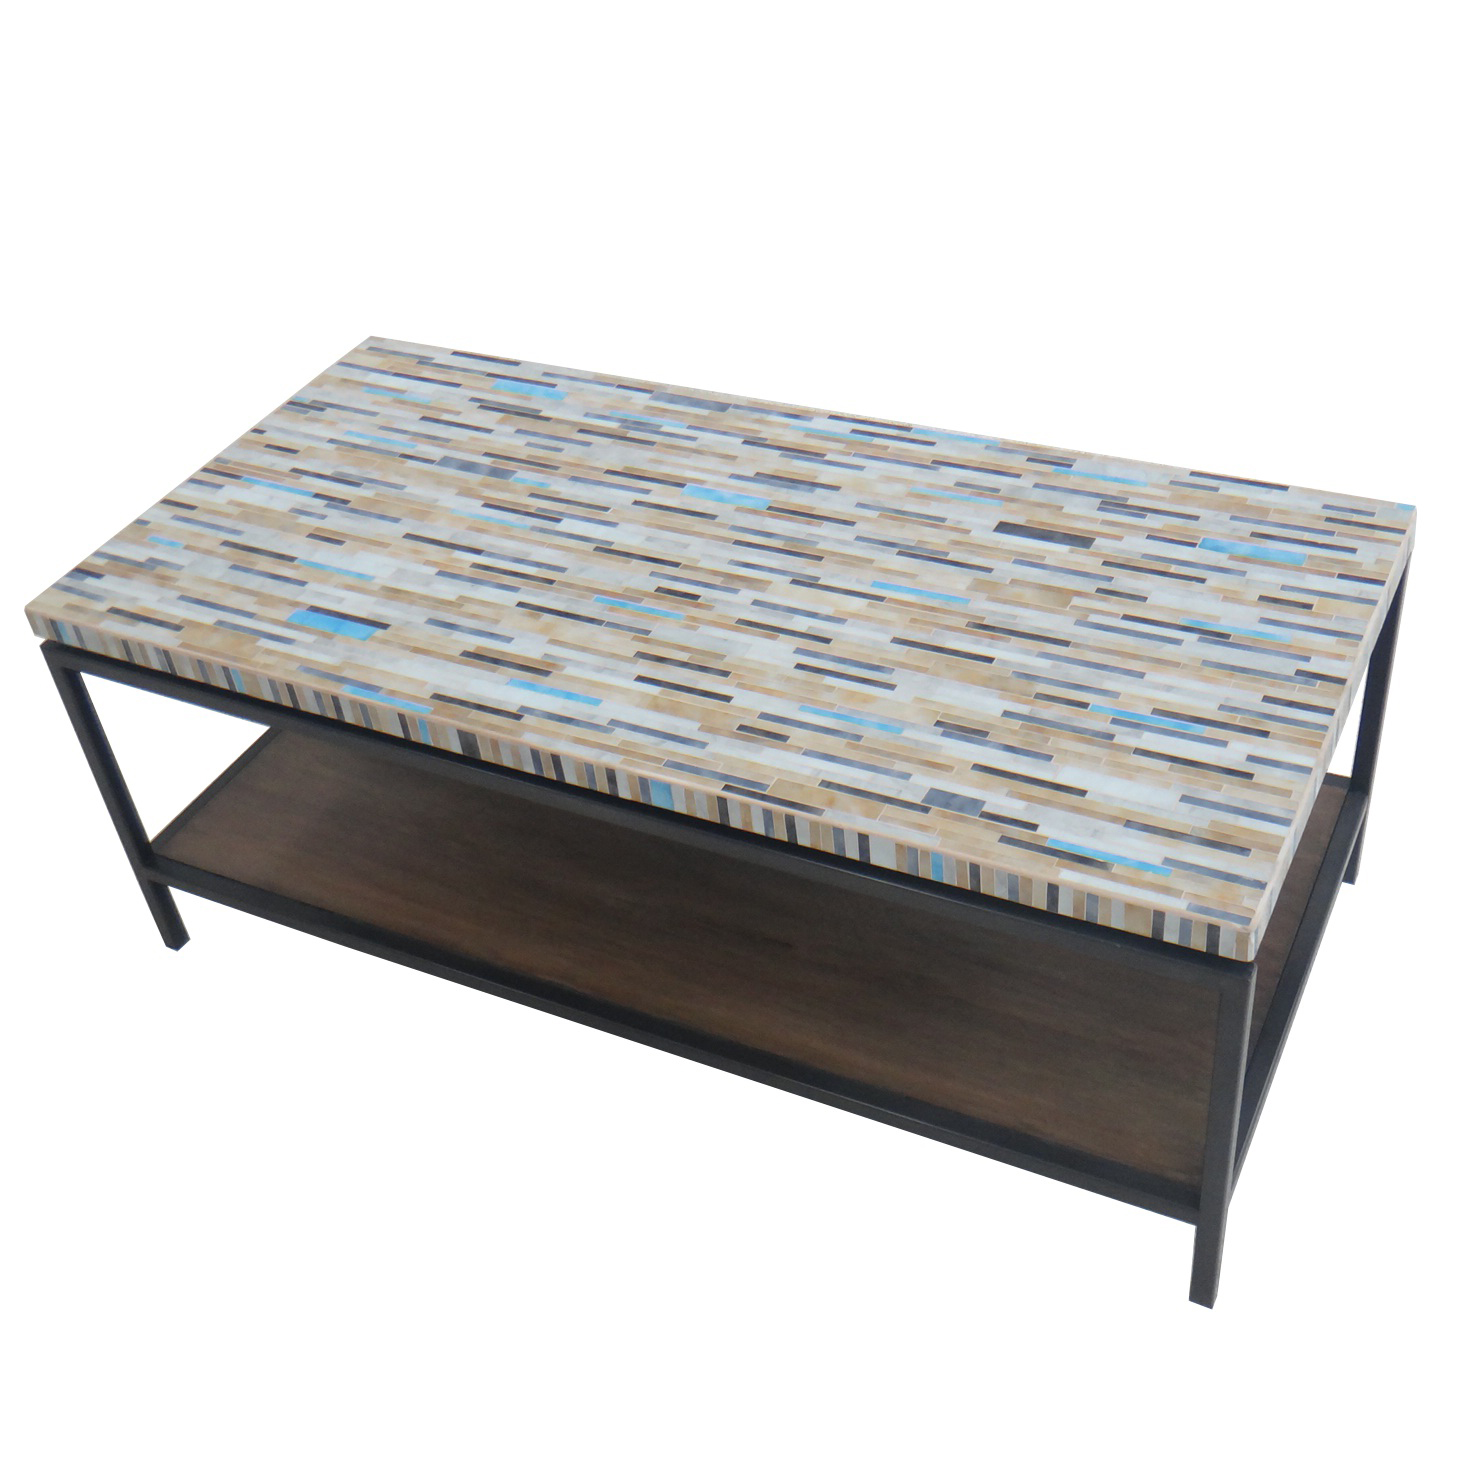 Neptune Coffee Table With Storage Ottomans: Wholesale Lifestyle Furnishings